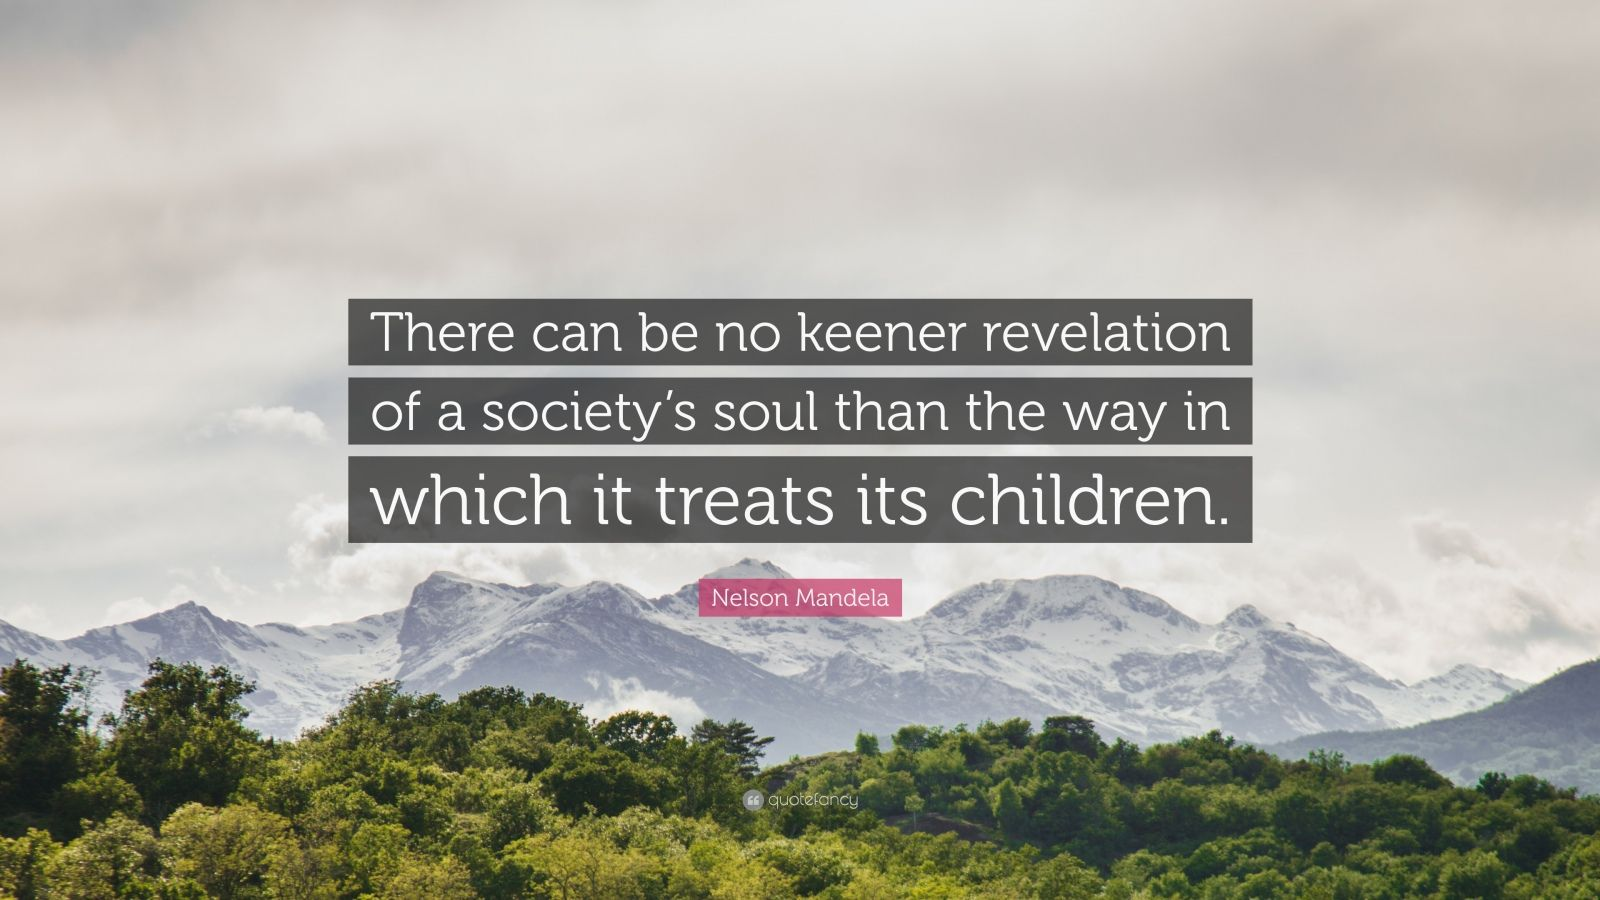 """Nelson Mandela Quote: """"There can be no keener revelation of a society's soul than the way in which it treats its children."""""""